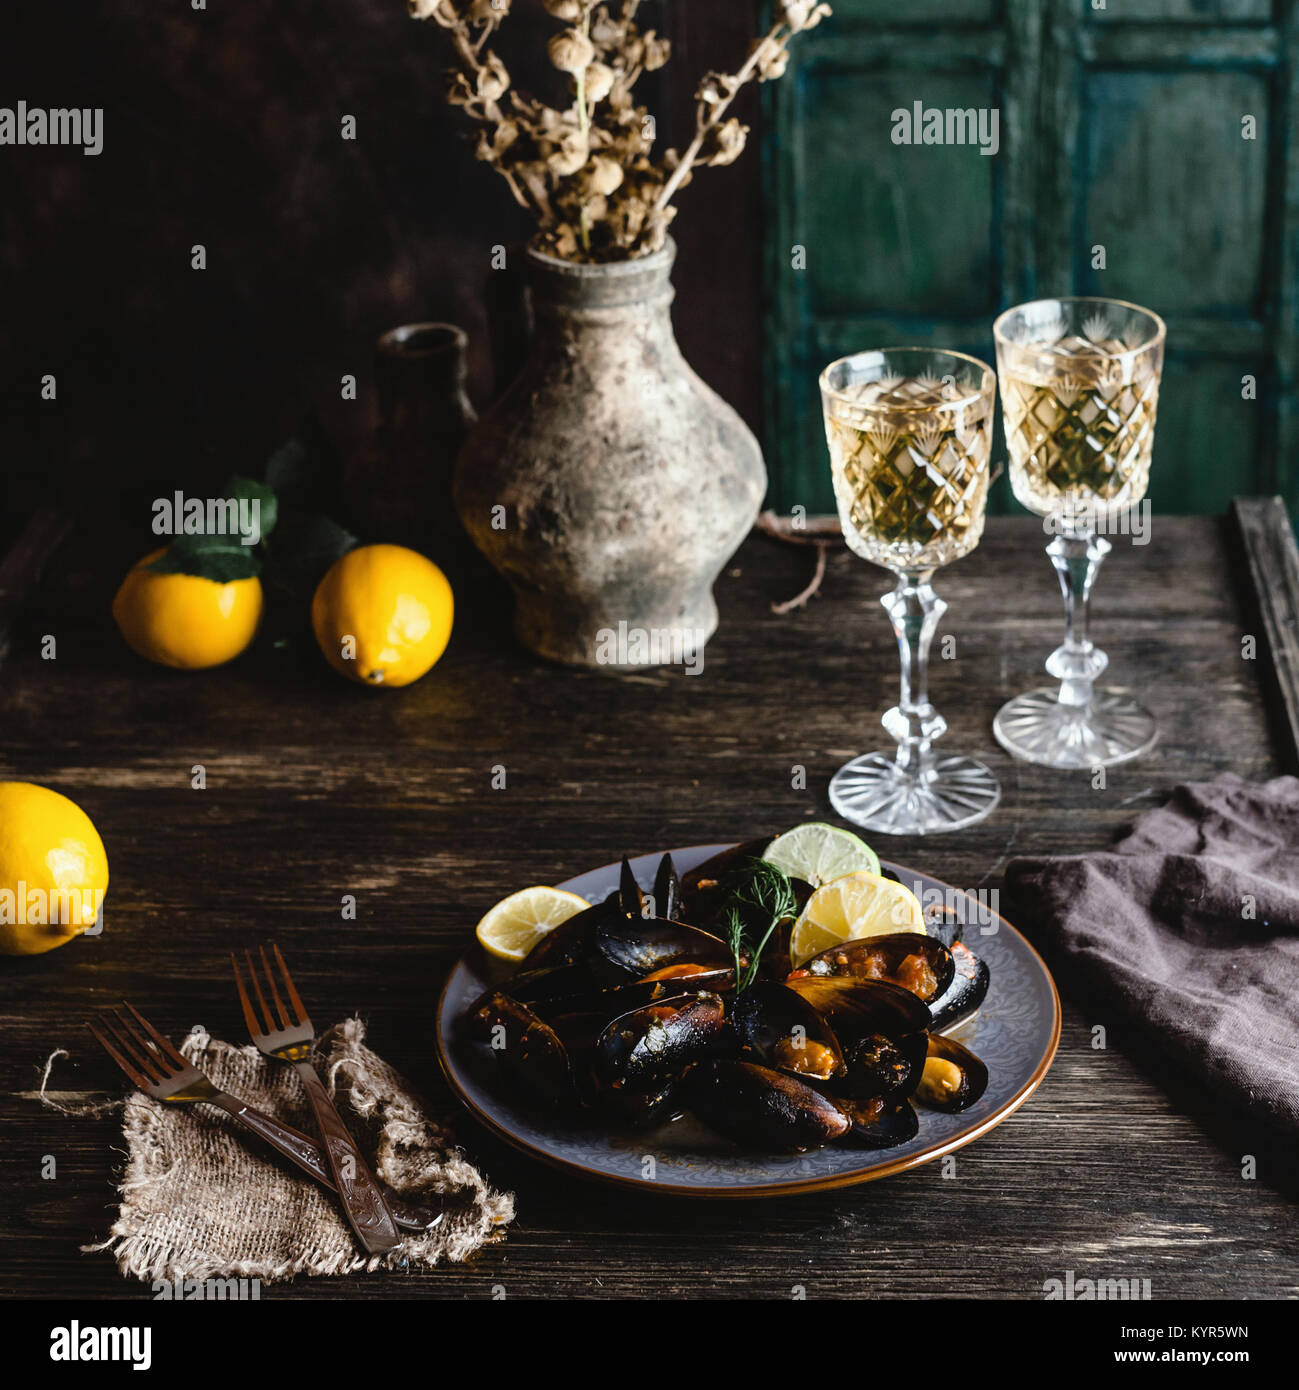 Cooked mussels with shells served on plate with two glasses of white wine on wooden table - Stock Image